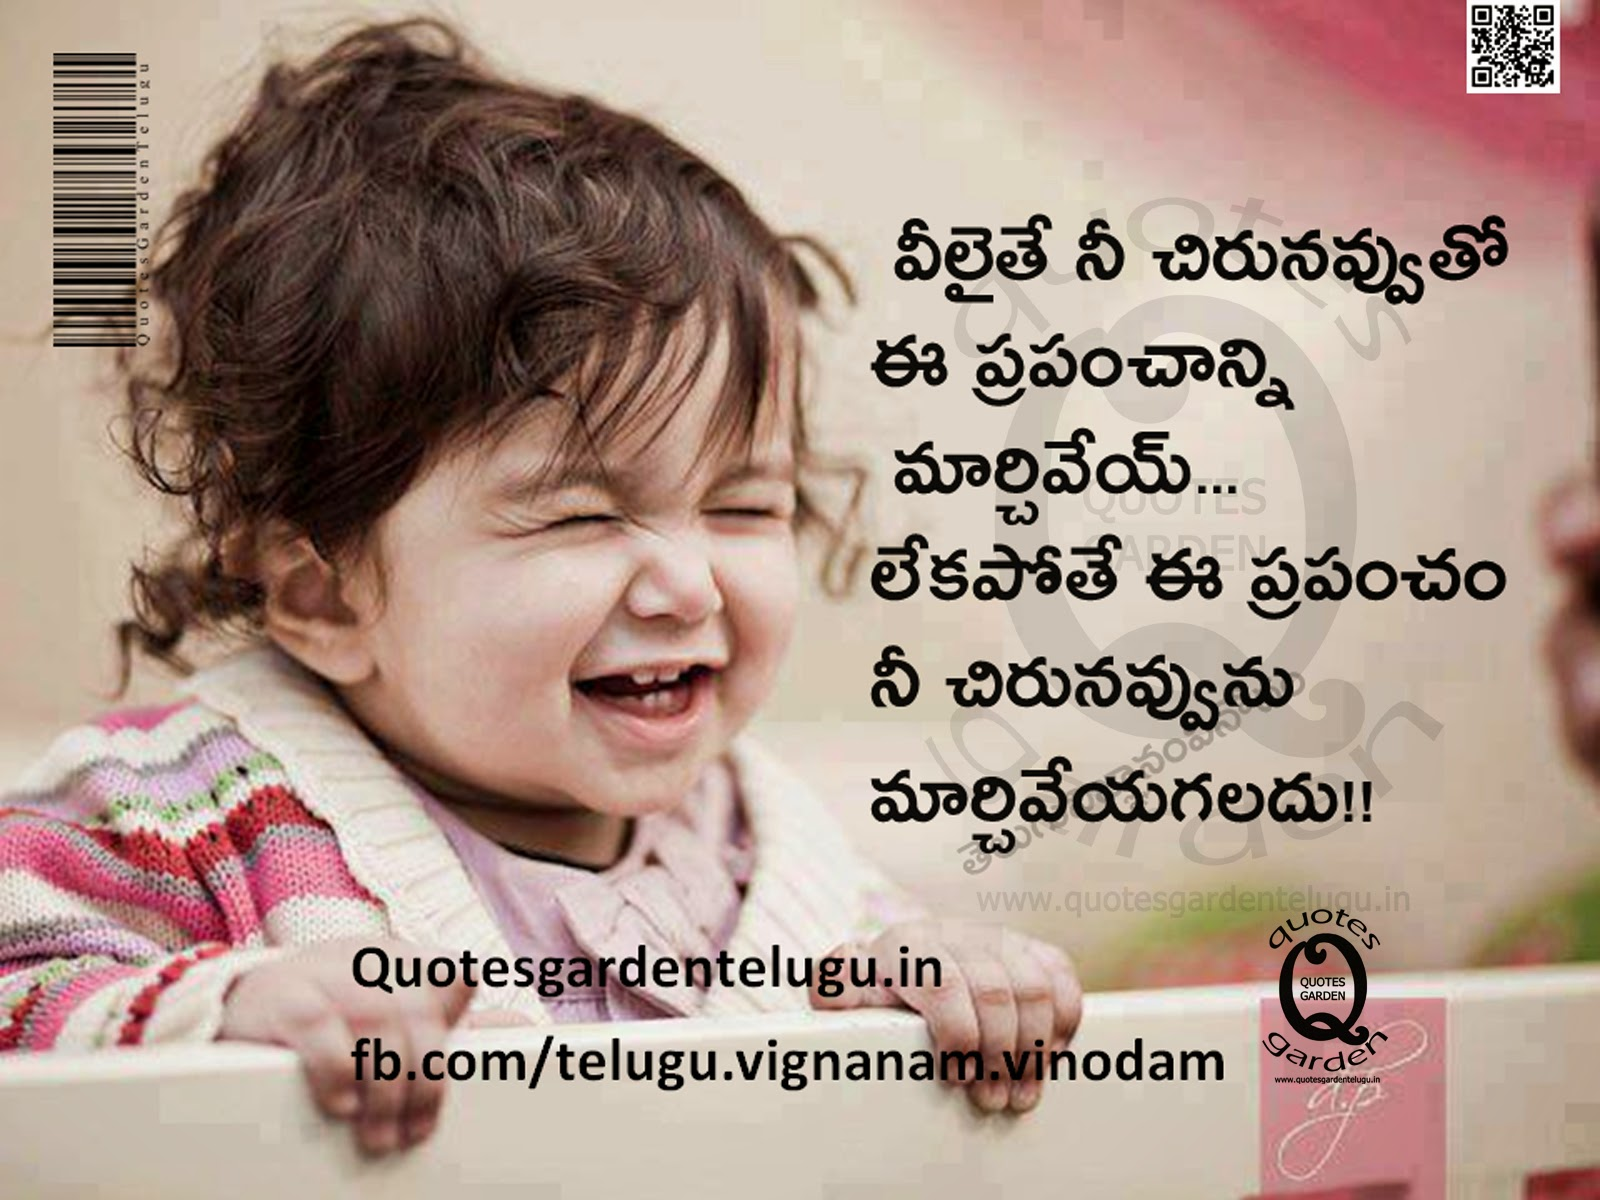 Malayalam Love Quotes Hd Wallpapers Telugu Good Morning Quotations With Cute Wallpapers